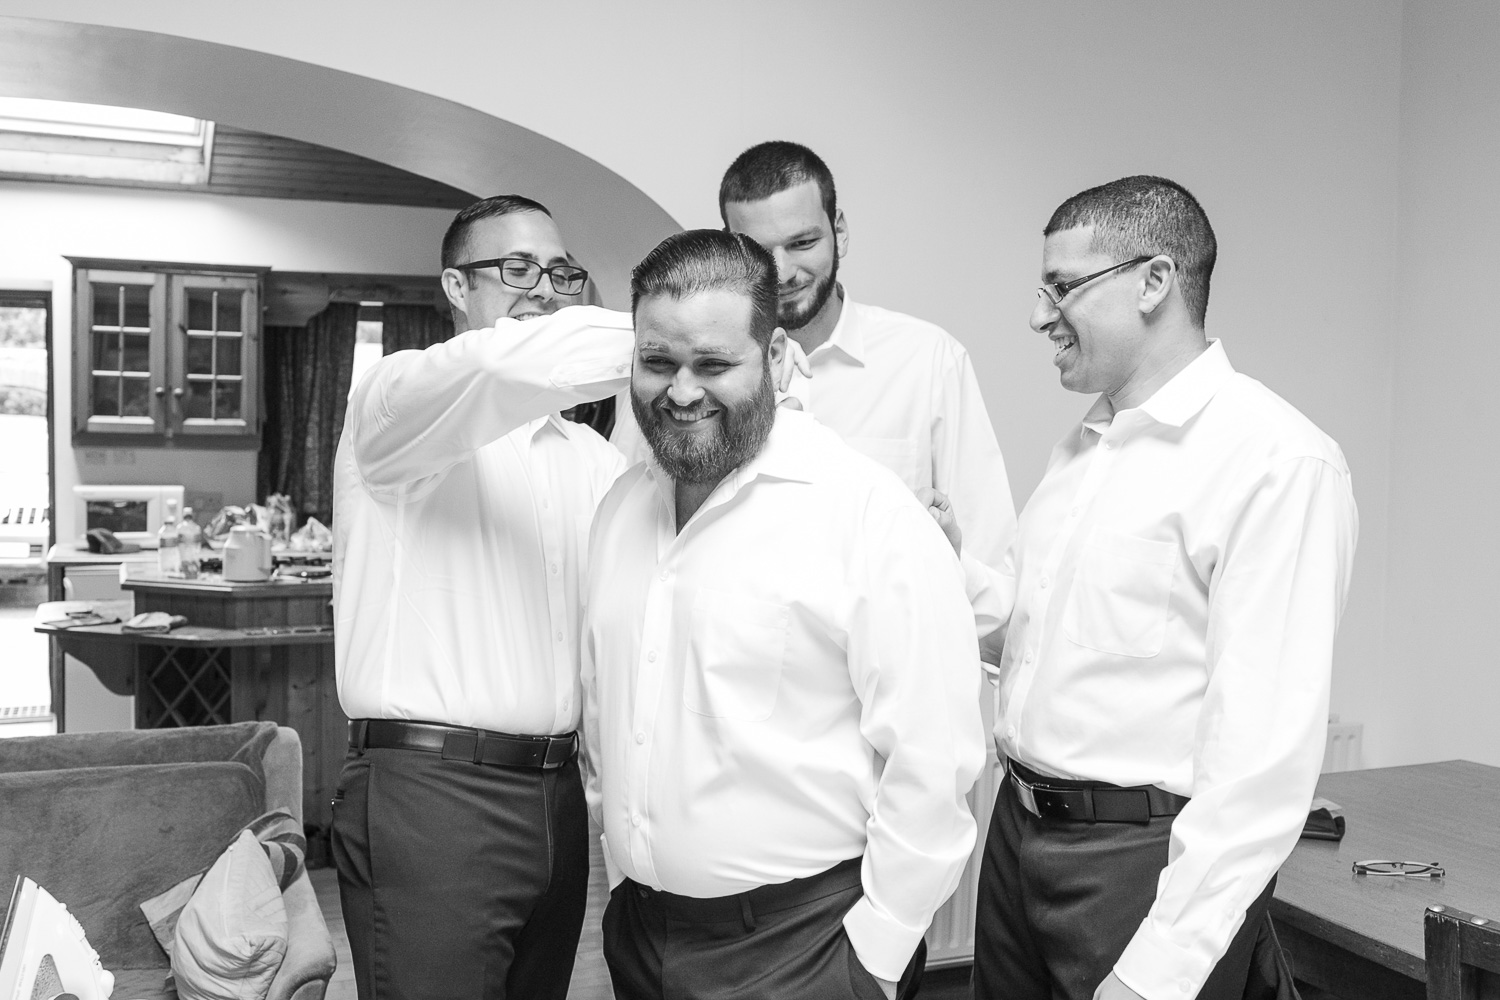 Groom and groomsmen getting ready before the ceremony